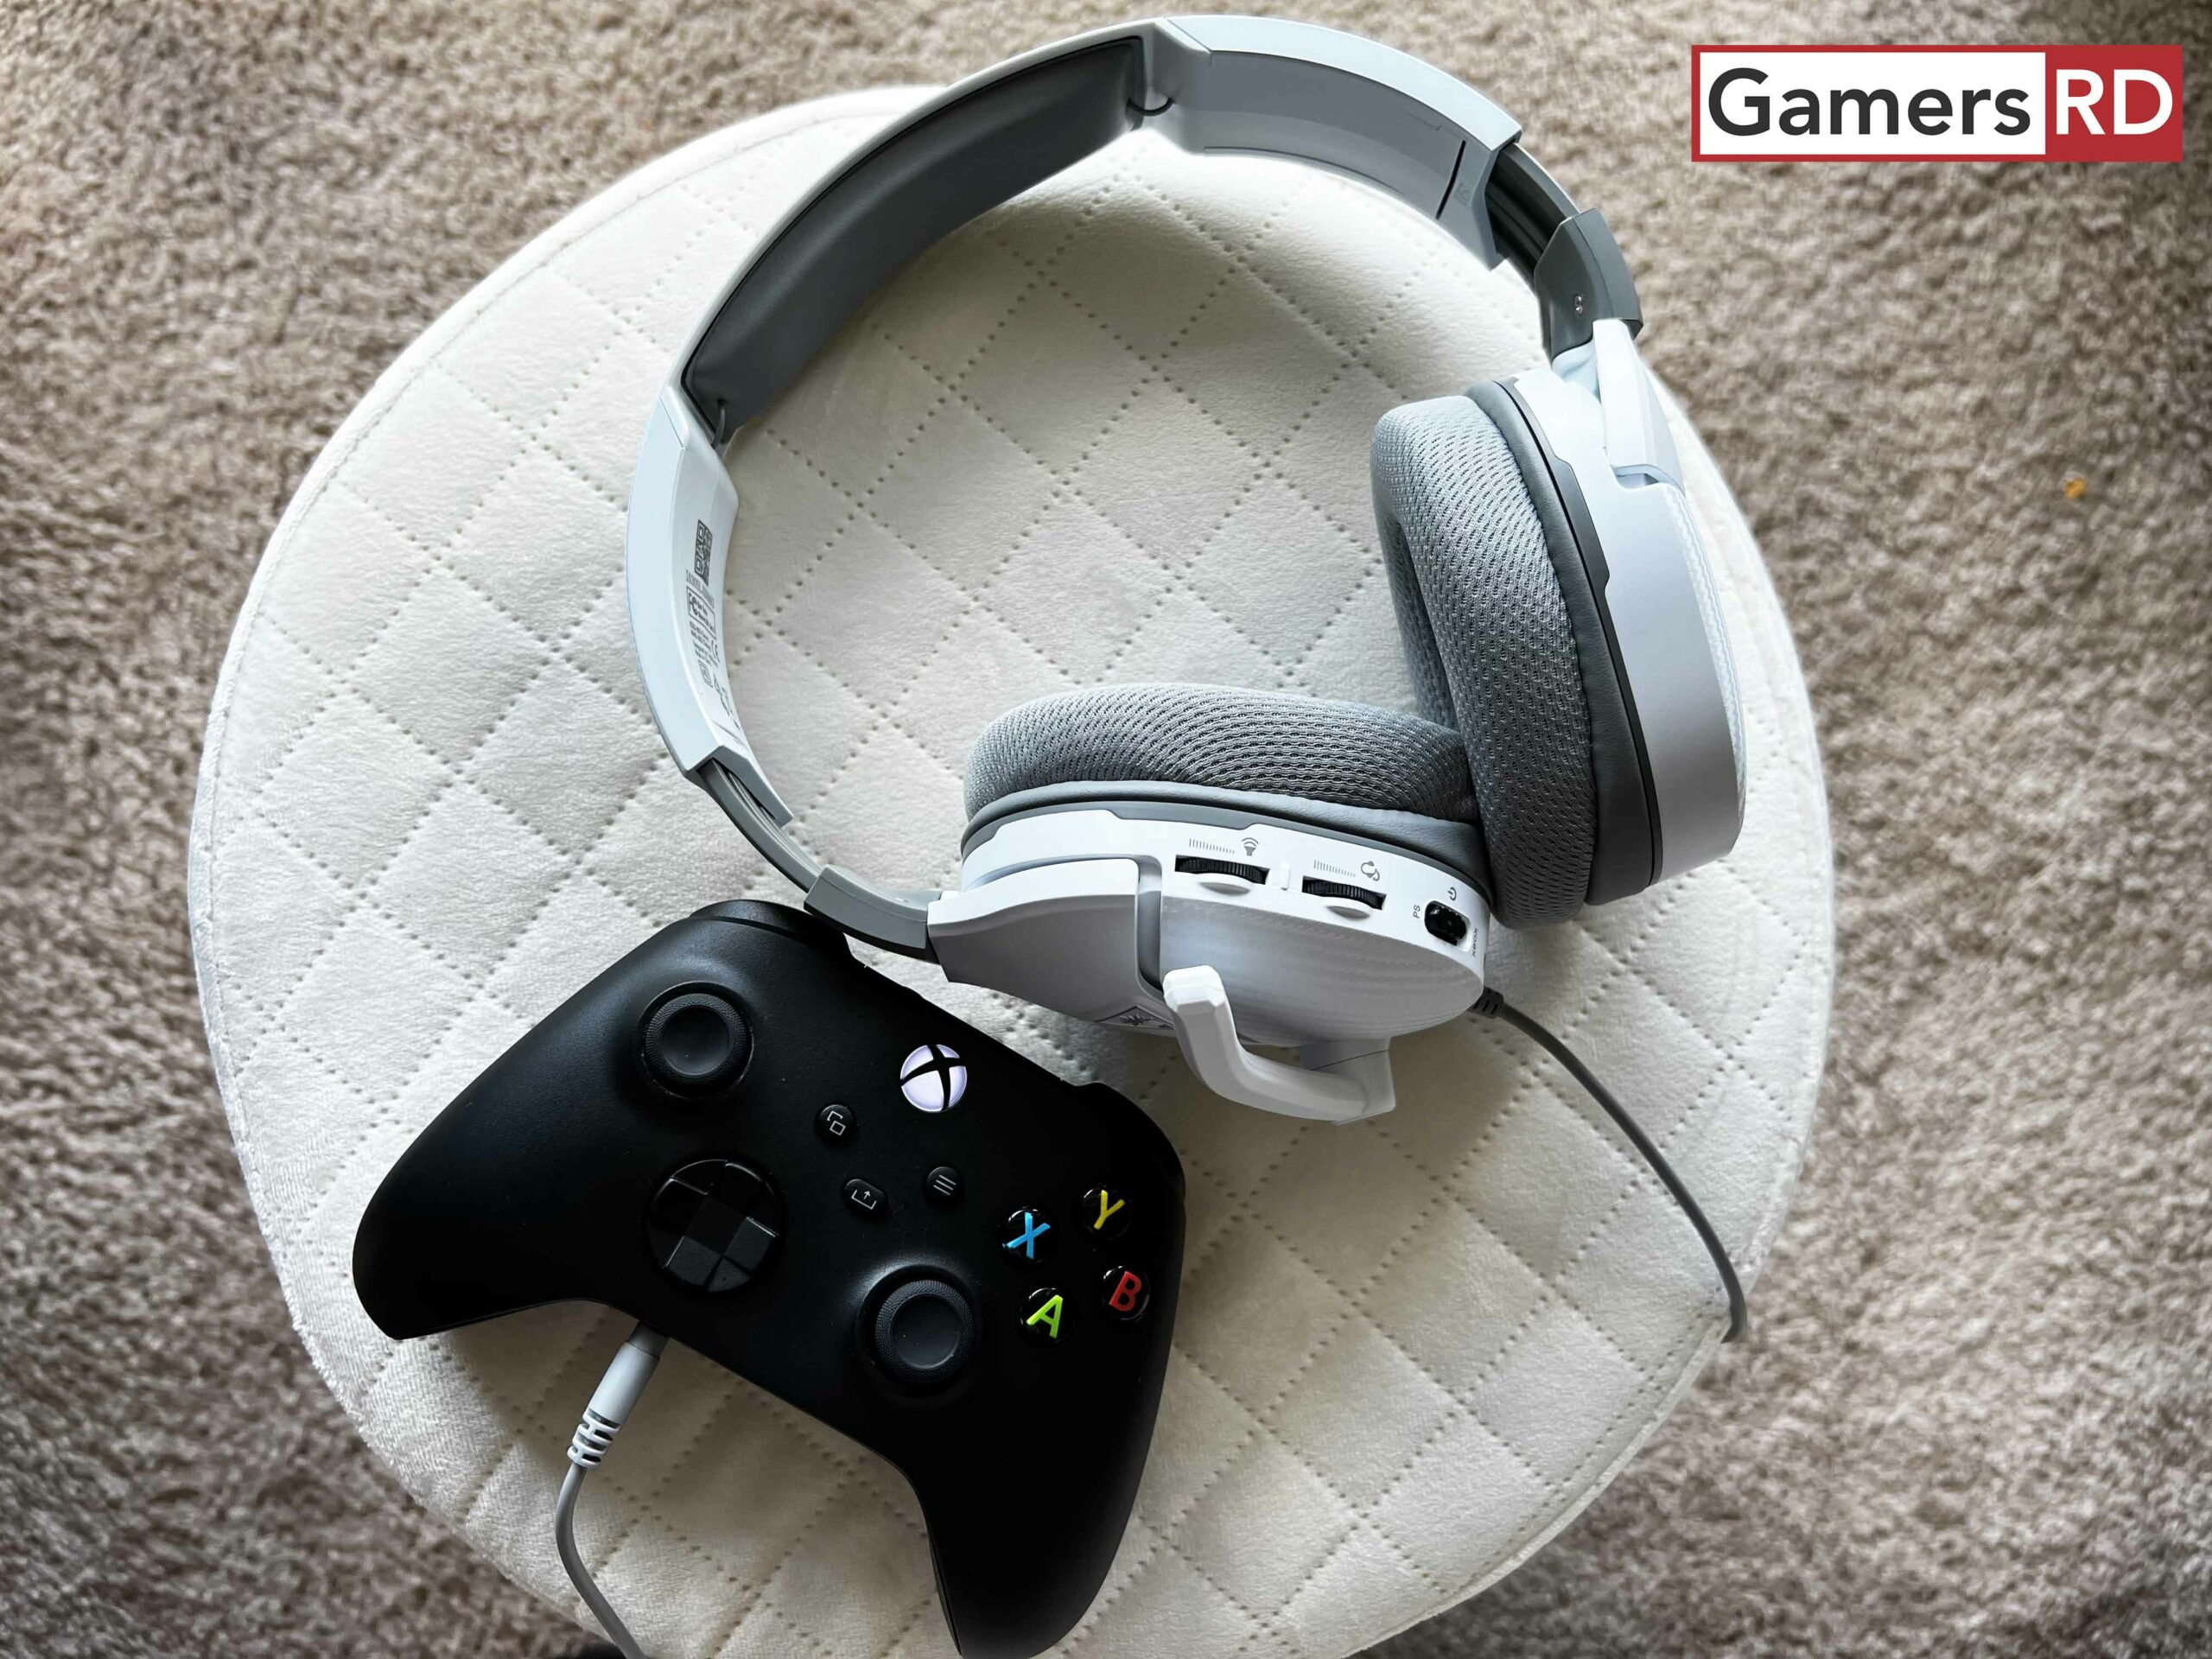 Turtle Beach Recon 200 Gen 2 Headsets Review, 5 GamersRD